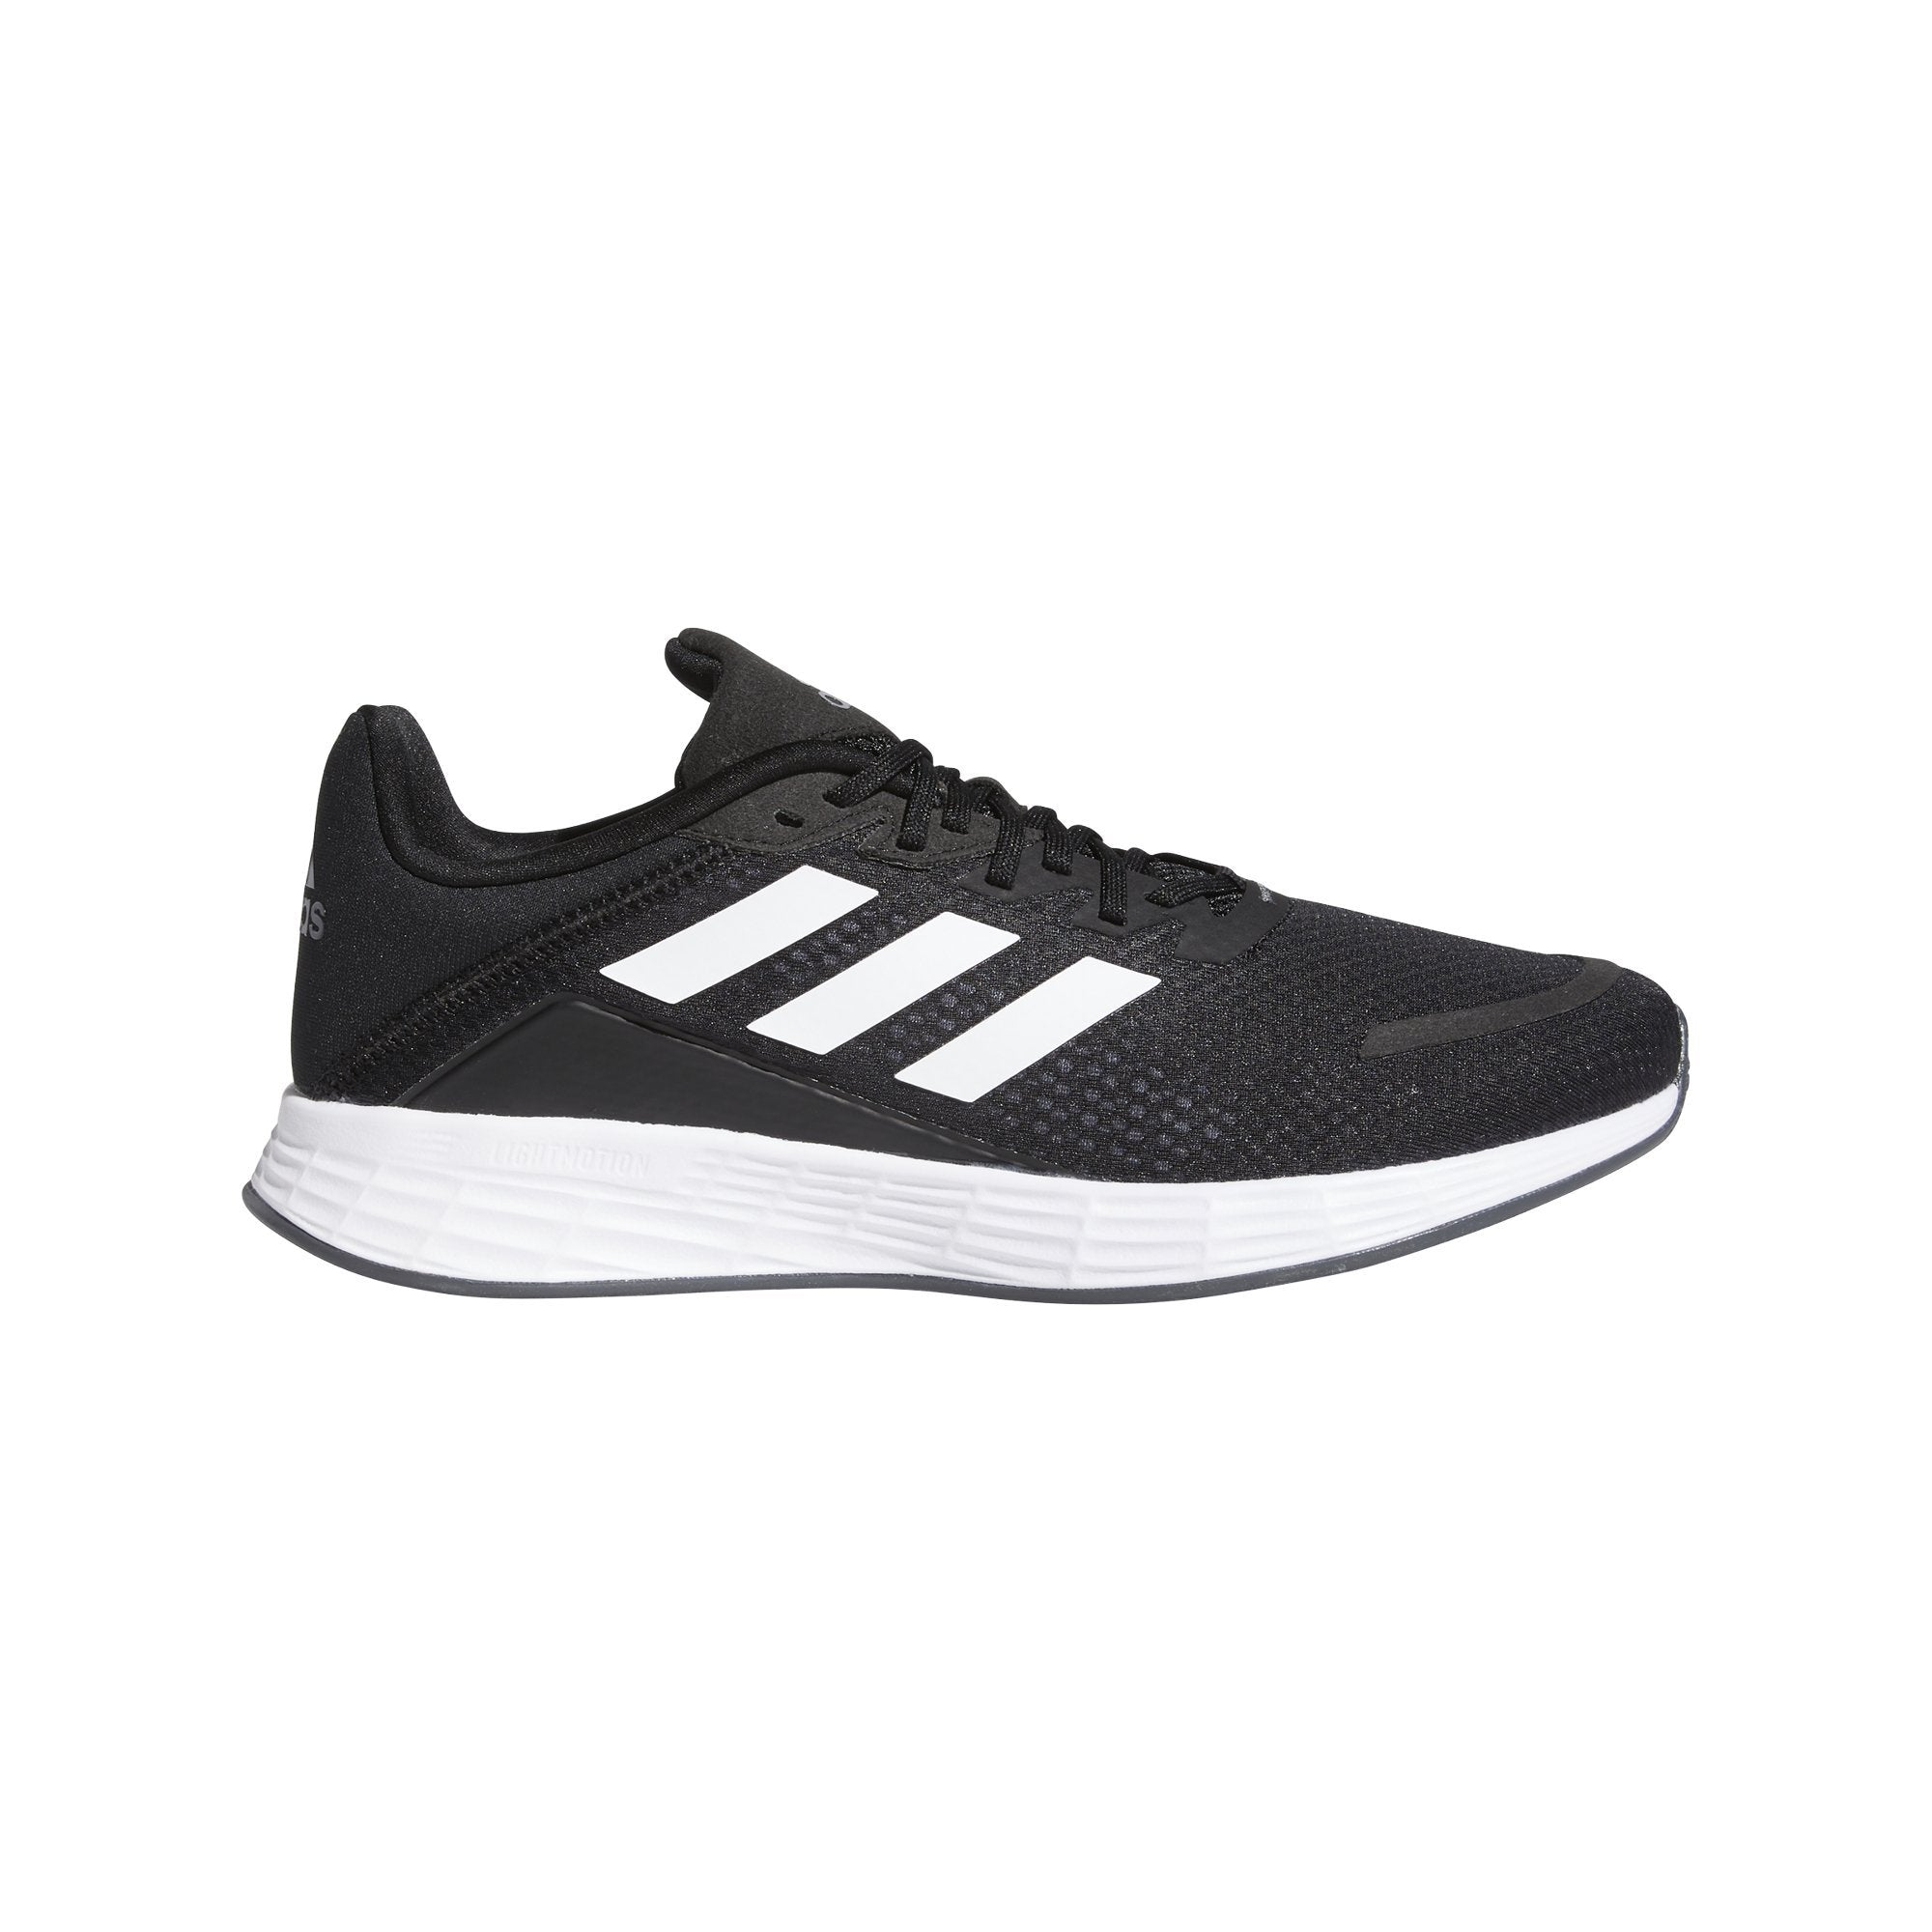 Adidas Mens Duramo SL Shoes - Core Black/Ftwr White/Grey Six